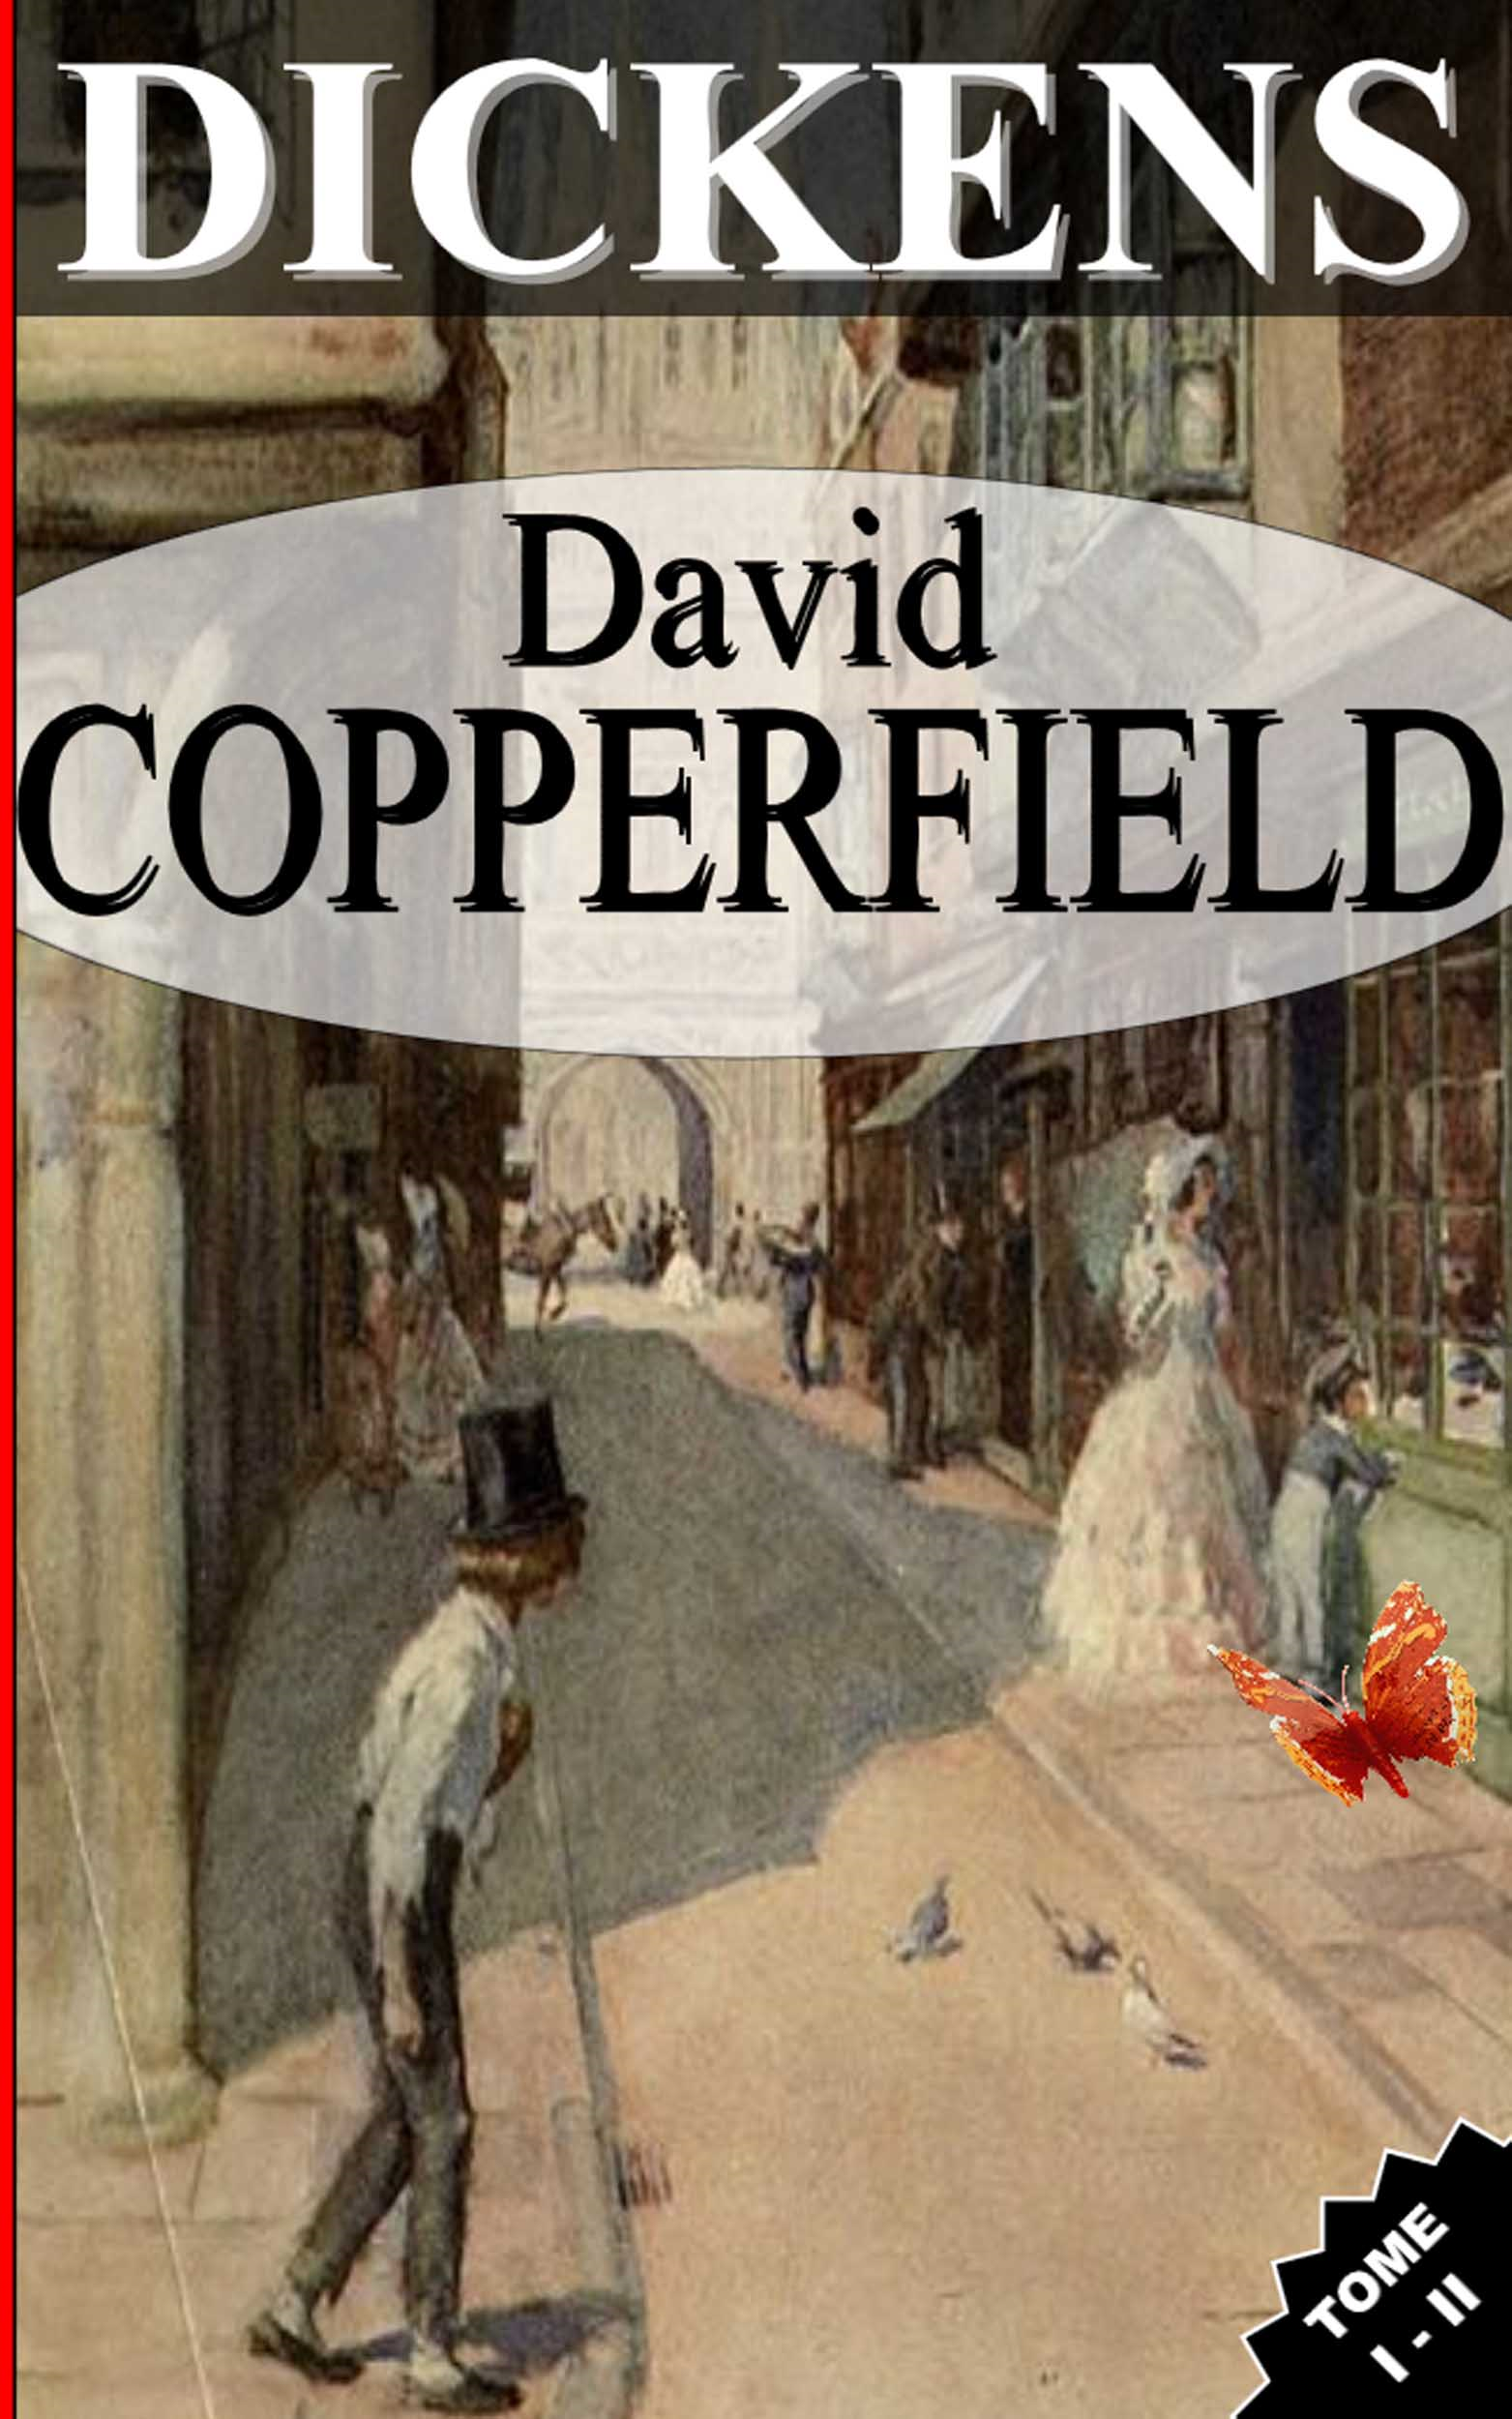 Charles Dickens - DAVID COPPERFIELD / TOME I - II